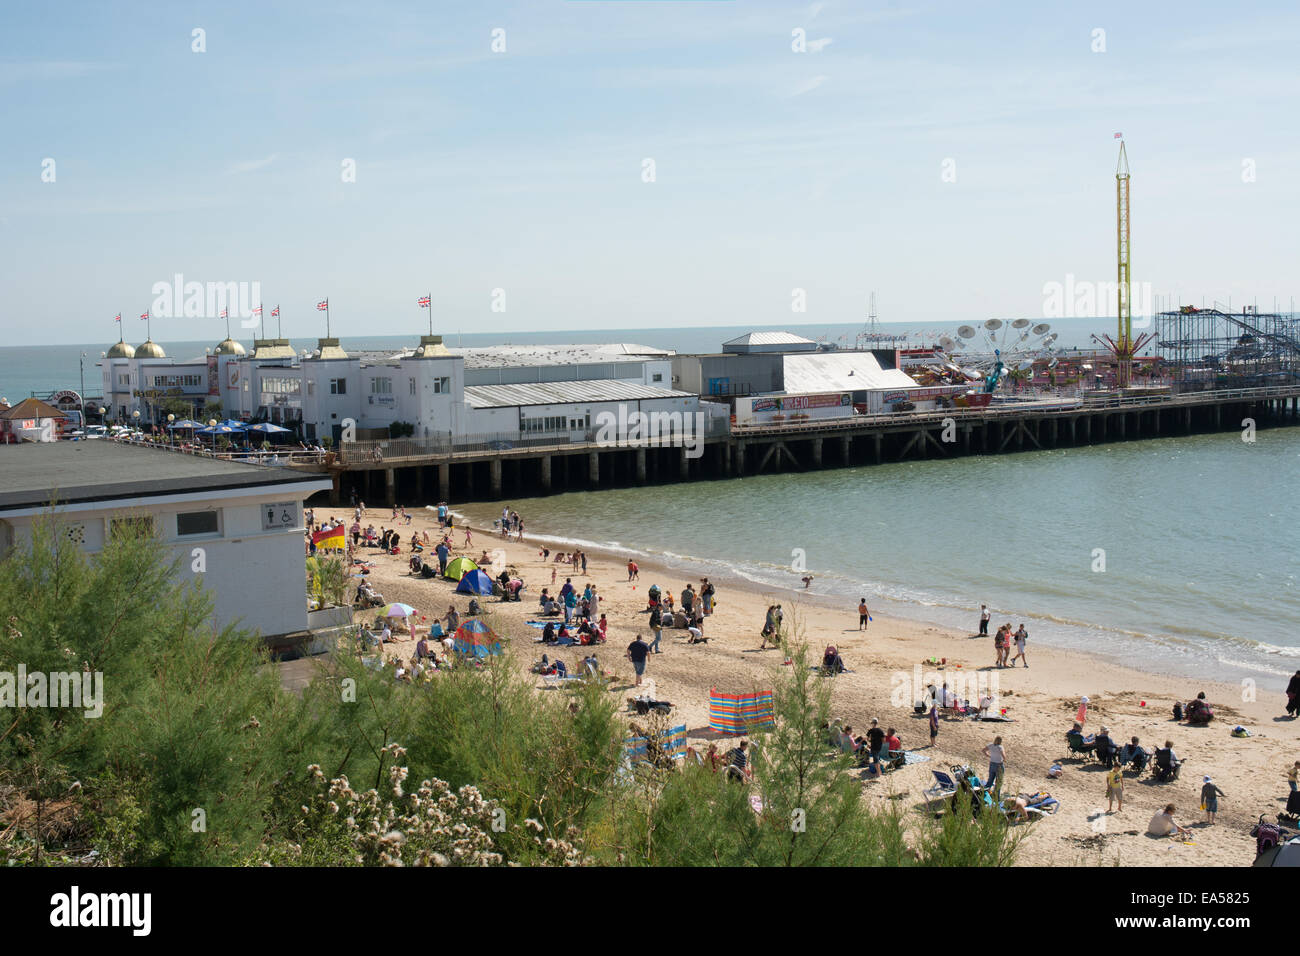 A view from the upper esplanade of Clacton-on-Sea pier and beach on a sunny day. Visitors are enjoying the sandy - Stock Image